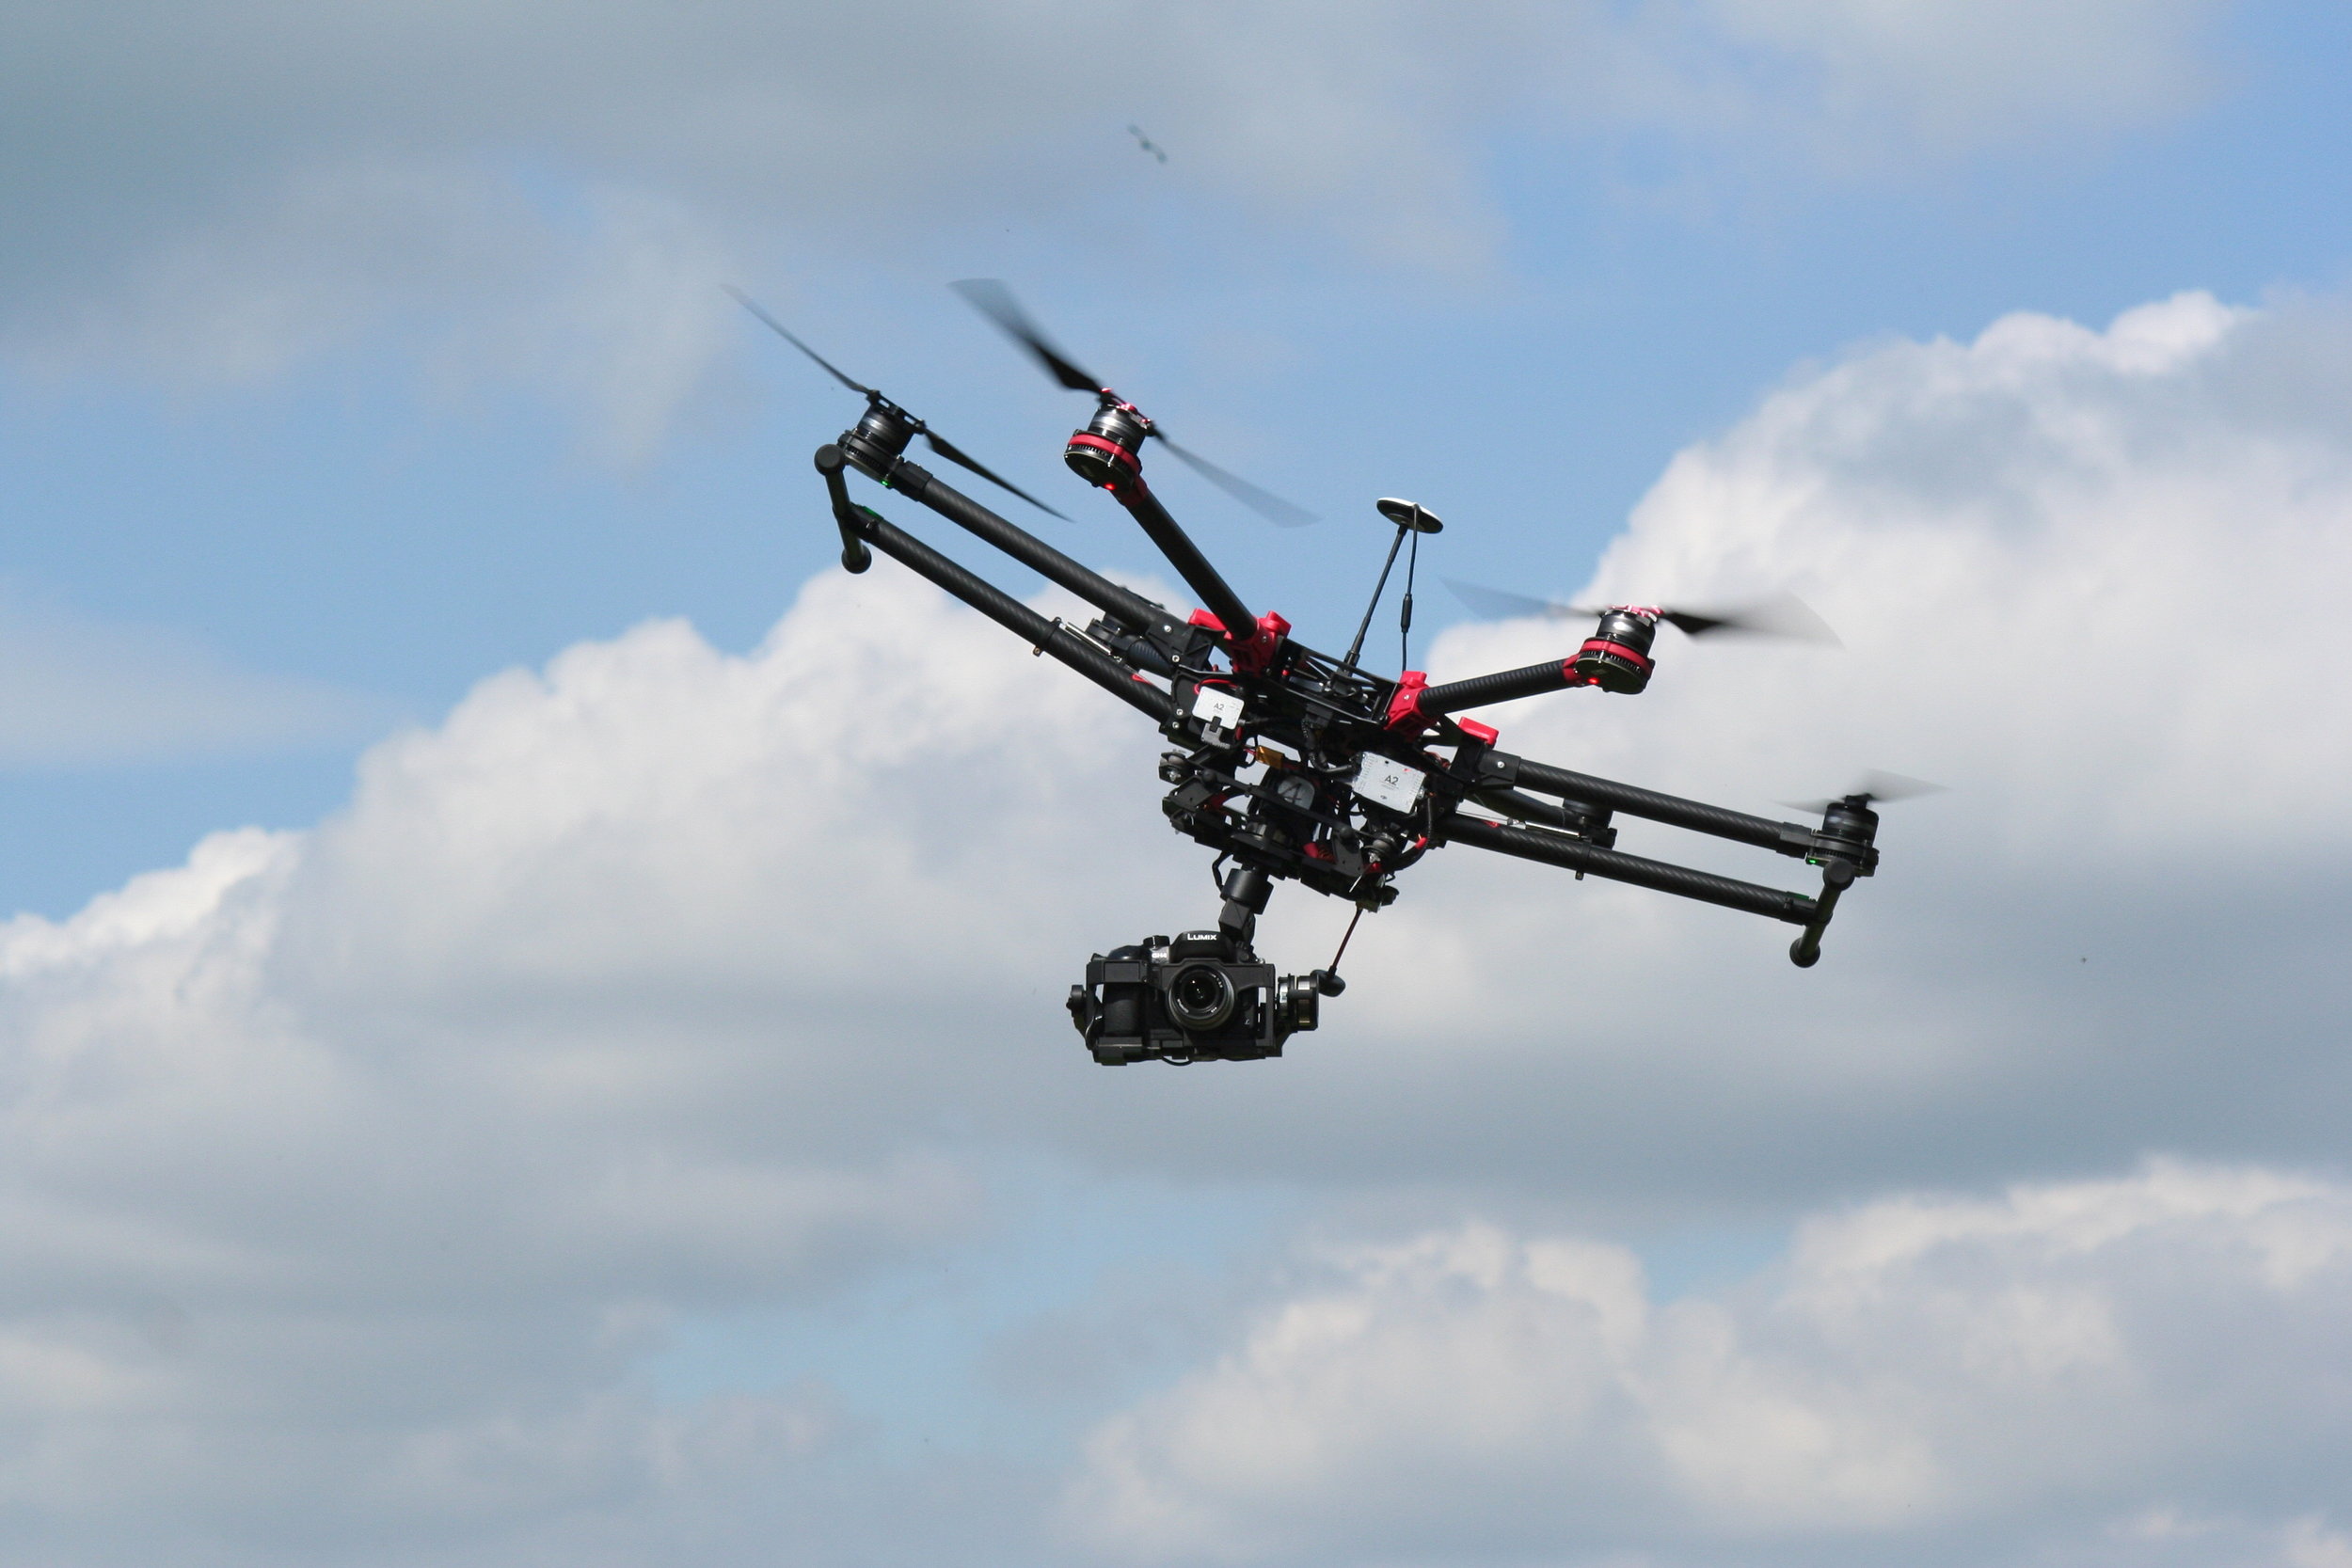 Our DJI S900